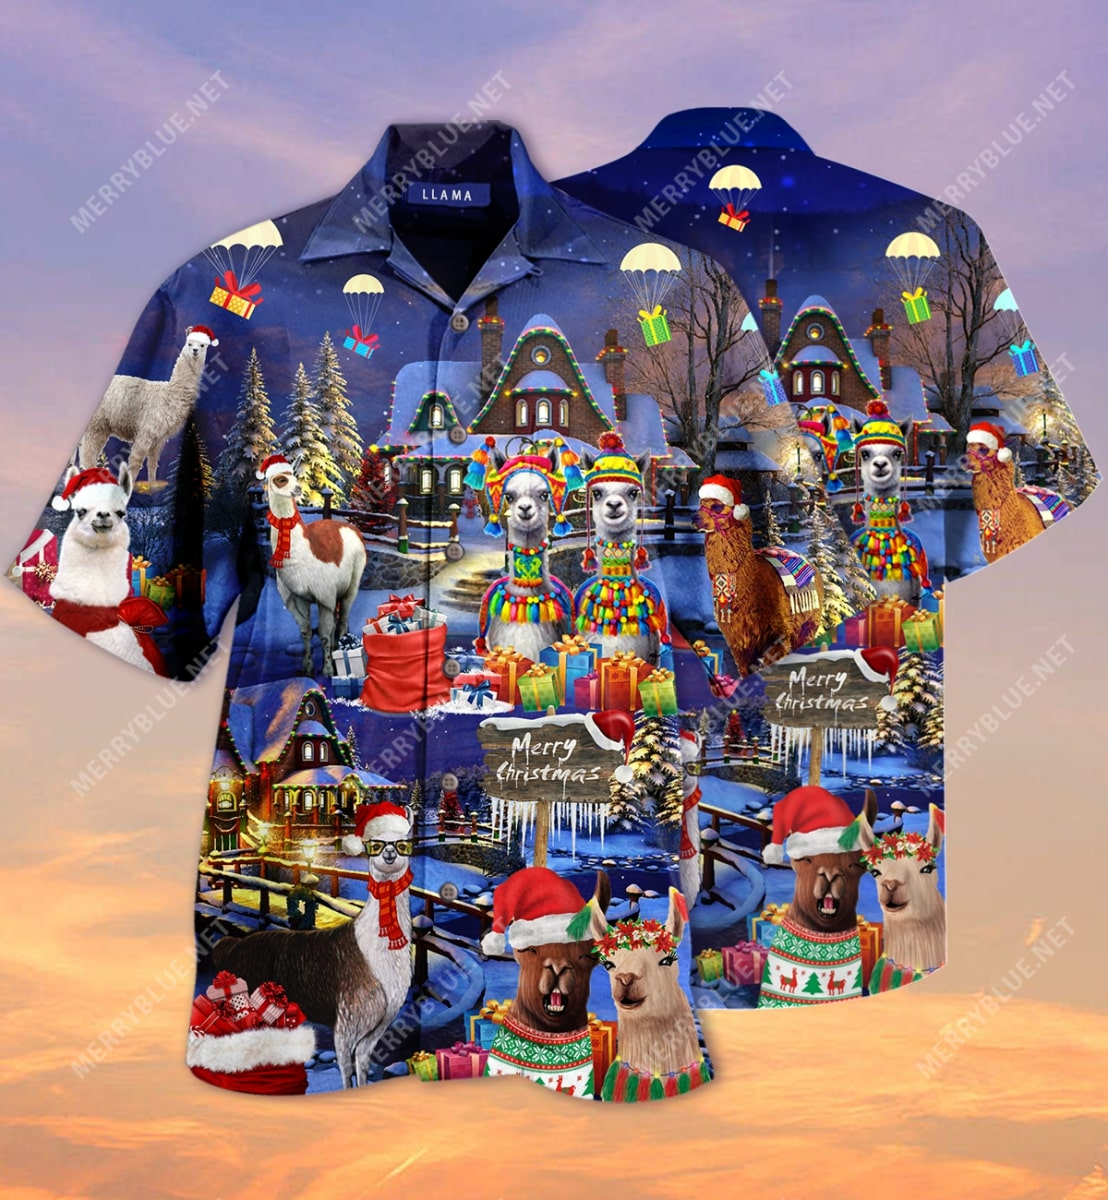 fa la la llama and merry christmas full printing hawaiian shirt 2